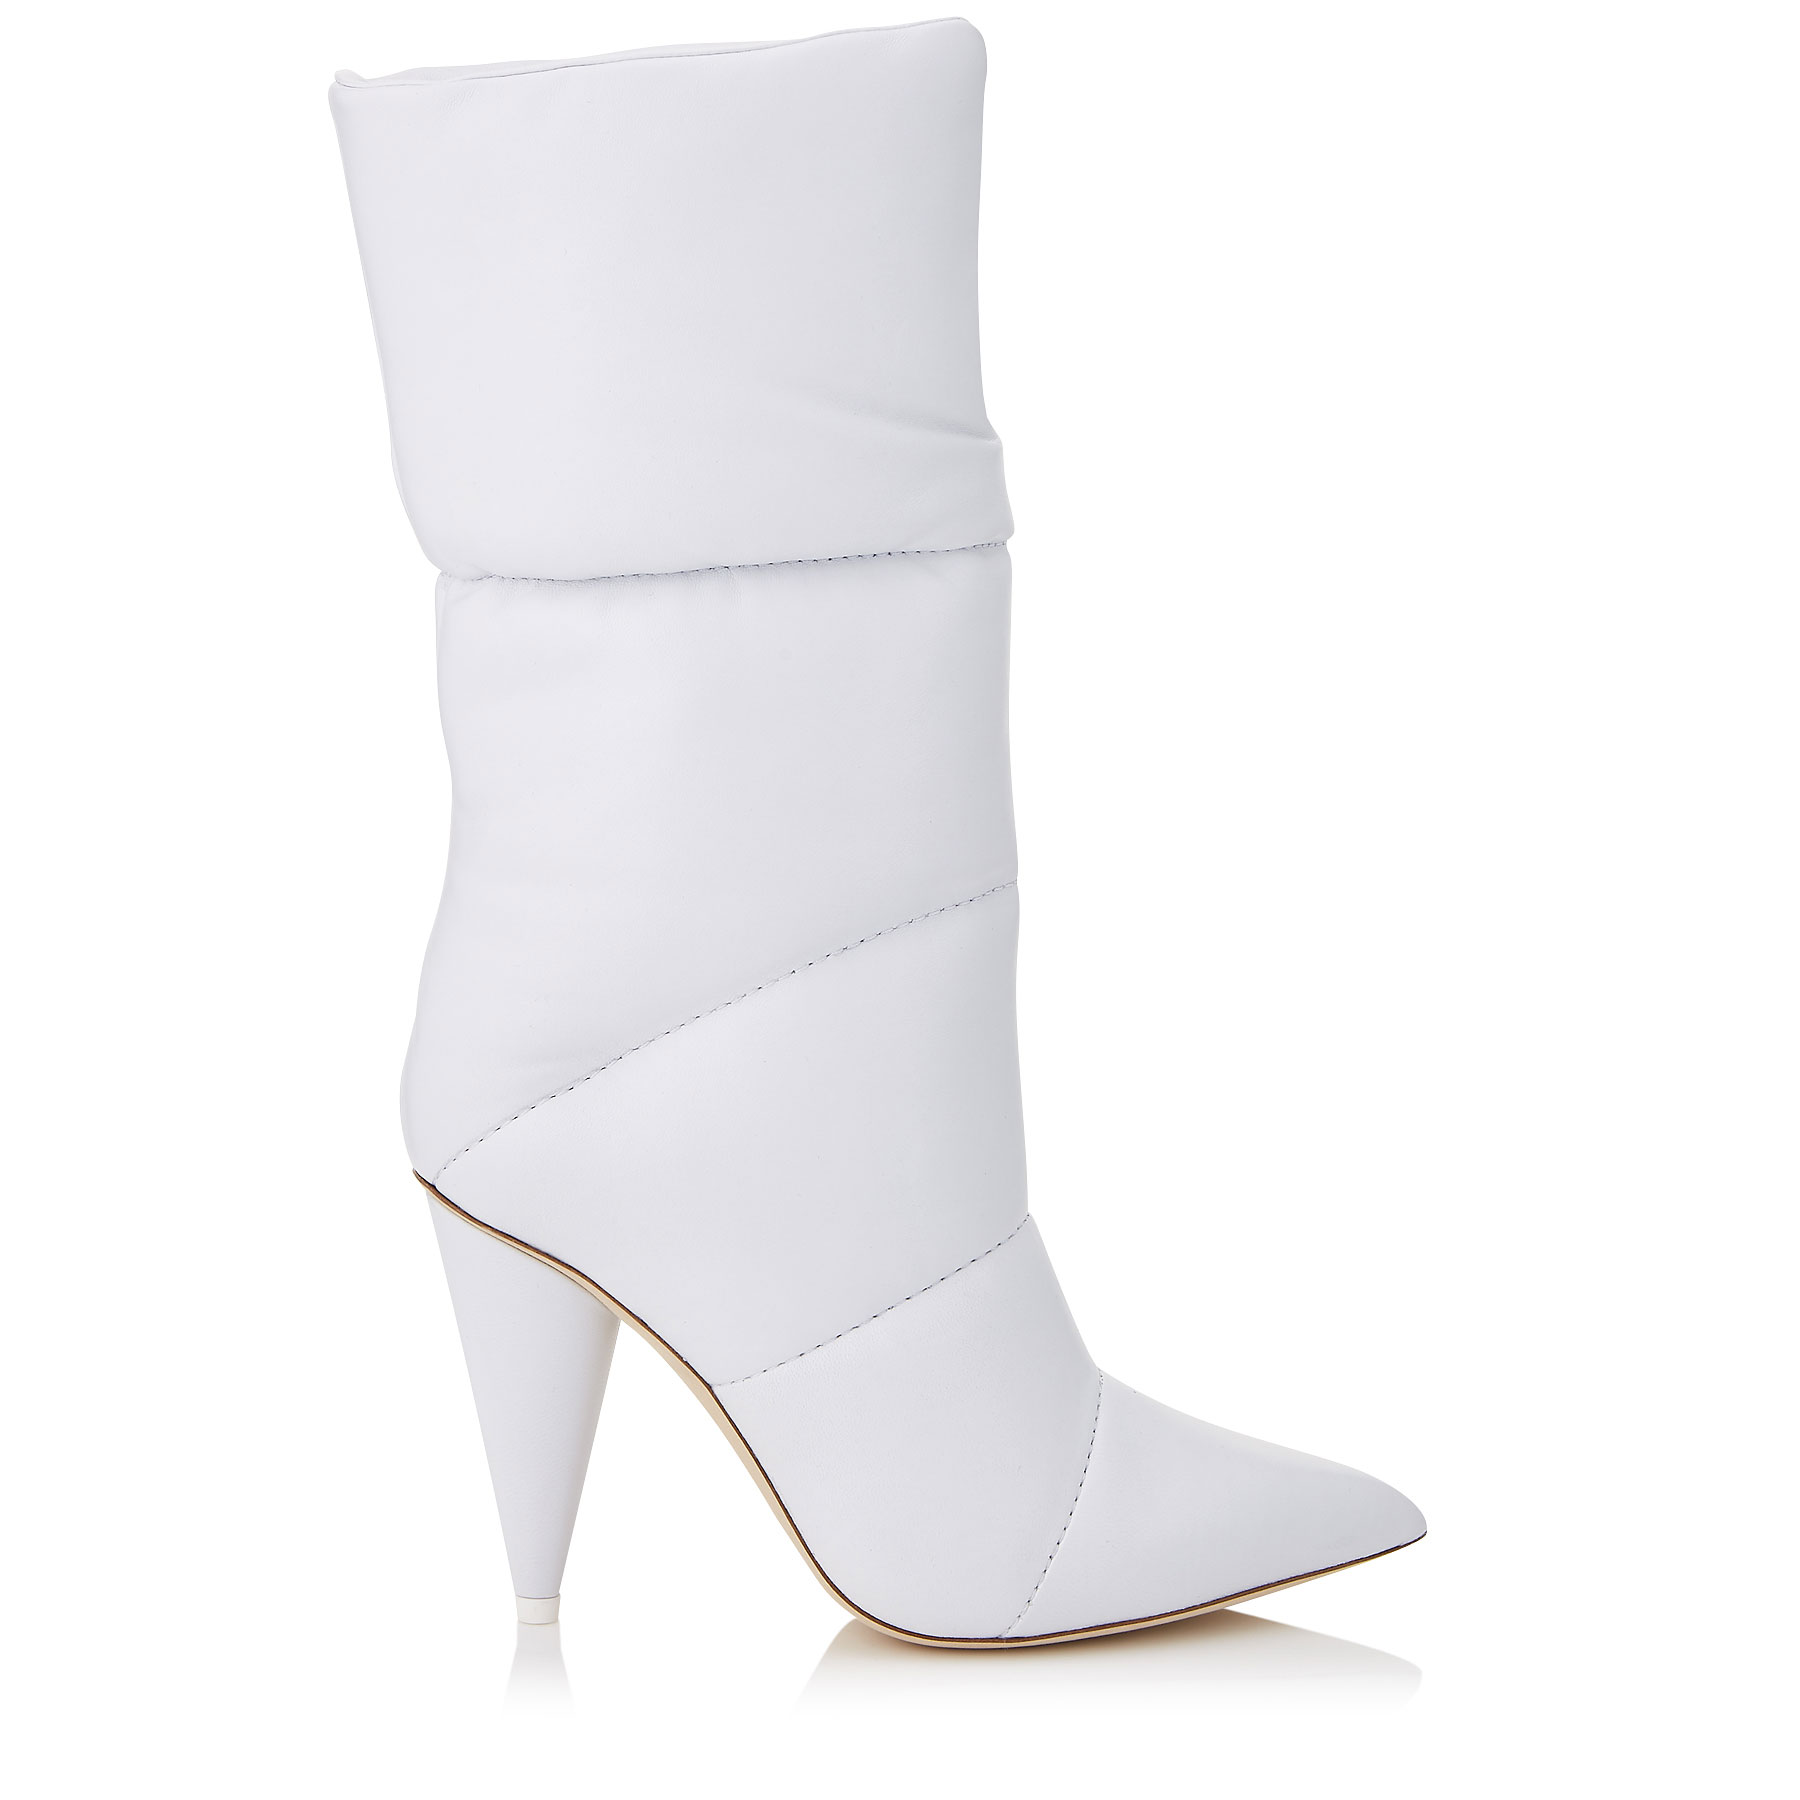 SARA 100 Optic White Padded Nappa Leather Mid High Boots by Jimmy Choo